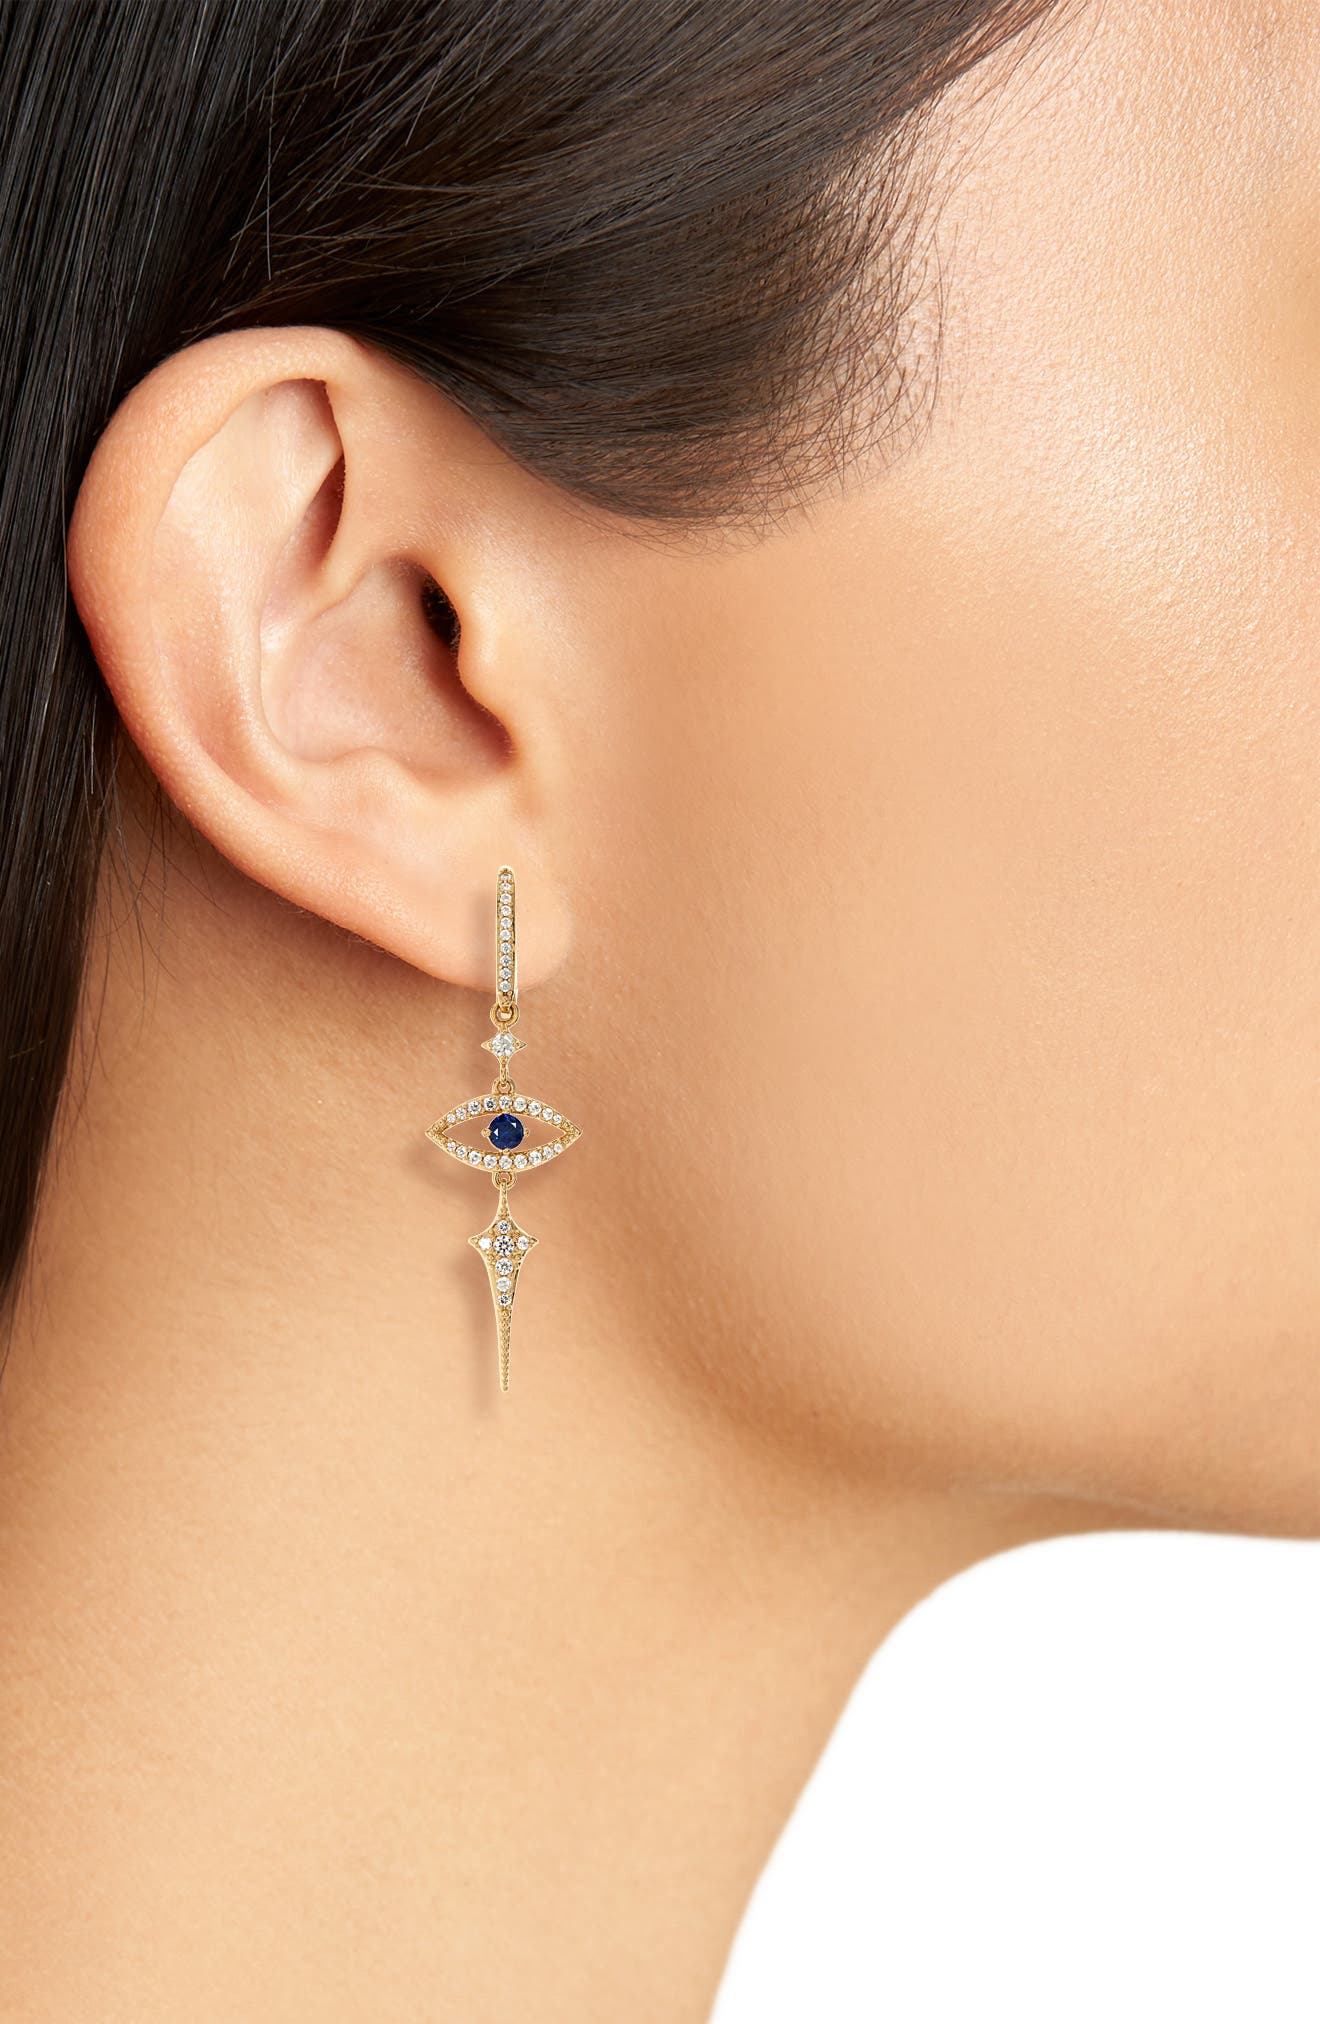 Nazar Evil Eye Earrings,                             Alternate thumbnail 2, color,                             710